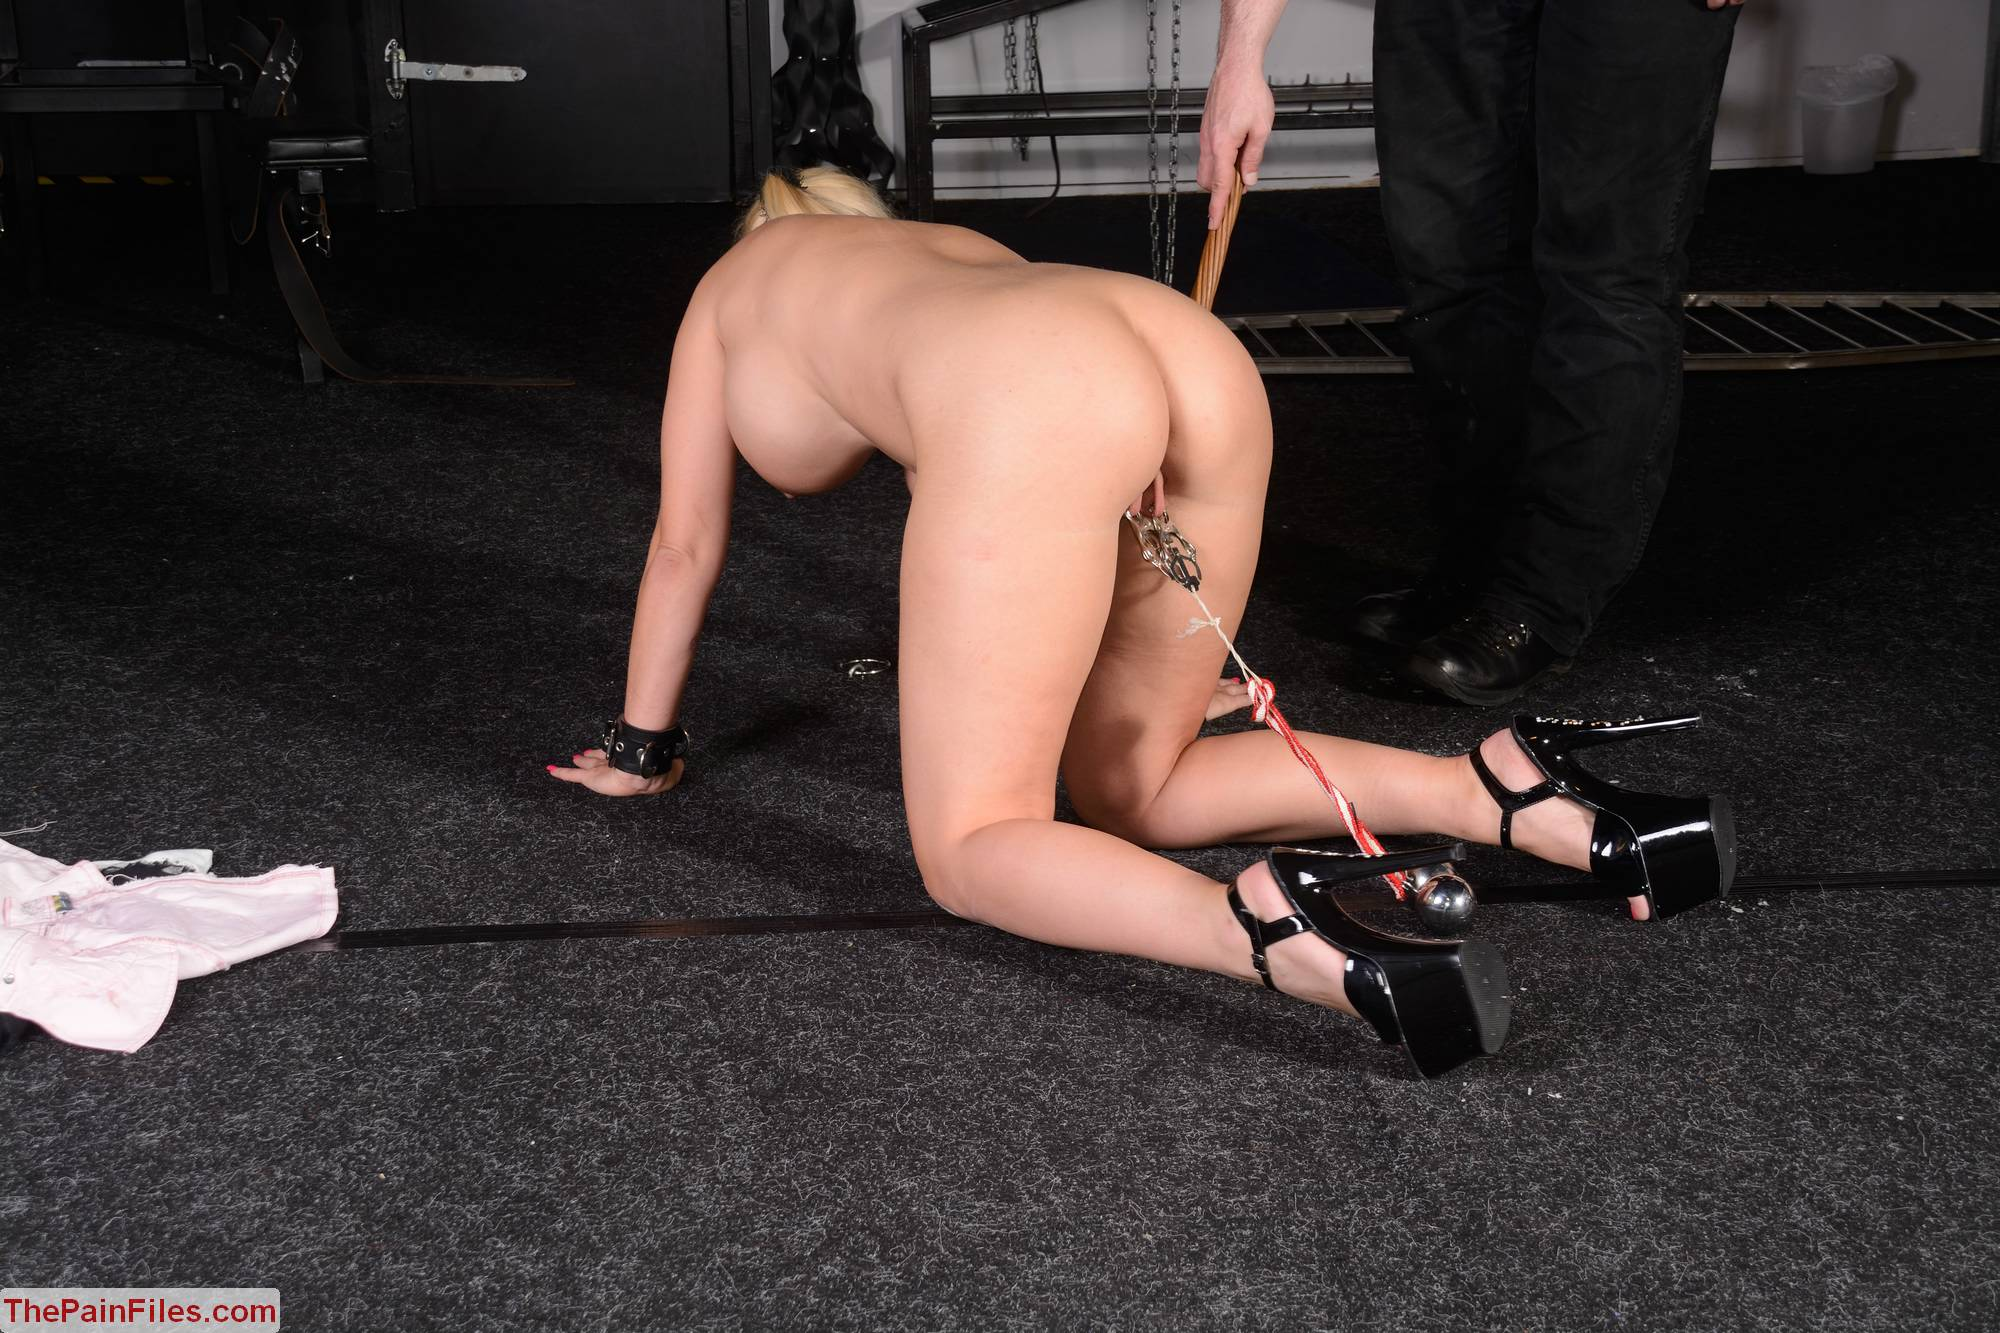 German Mistress Bdsm Fetish Porn - Free german bdsm Free german bdsm